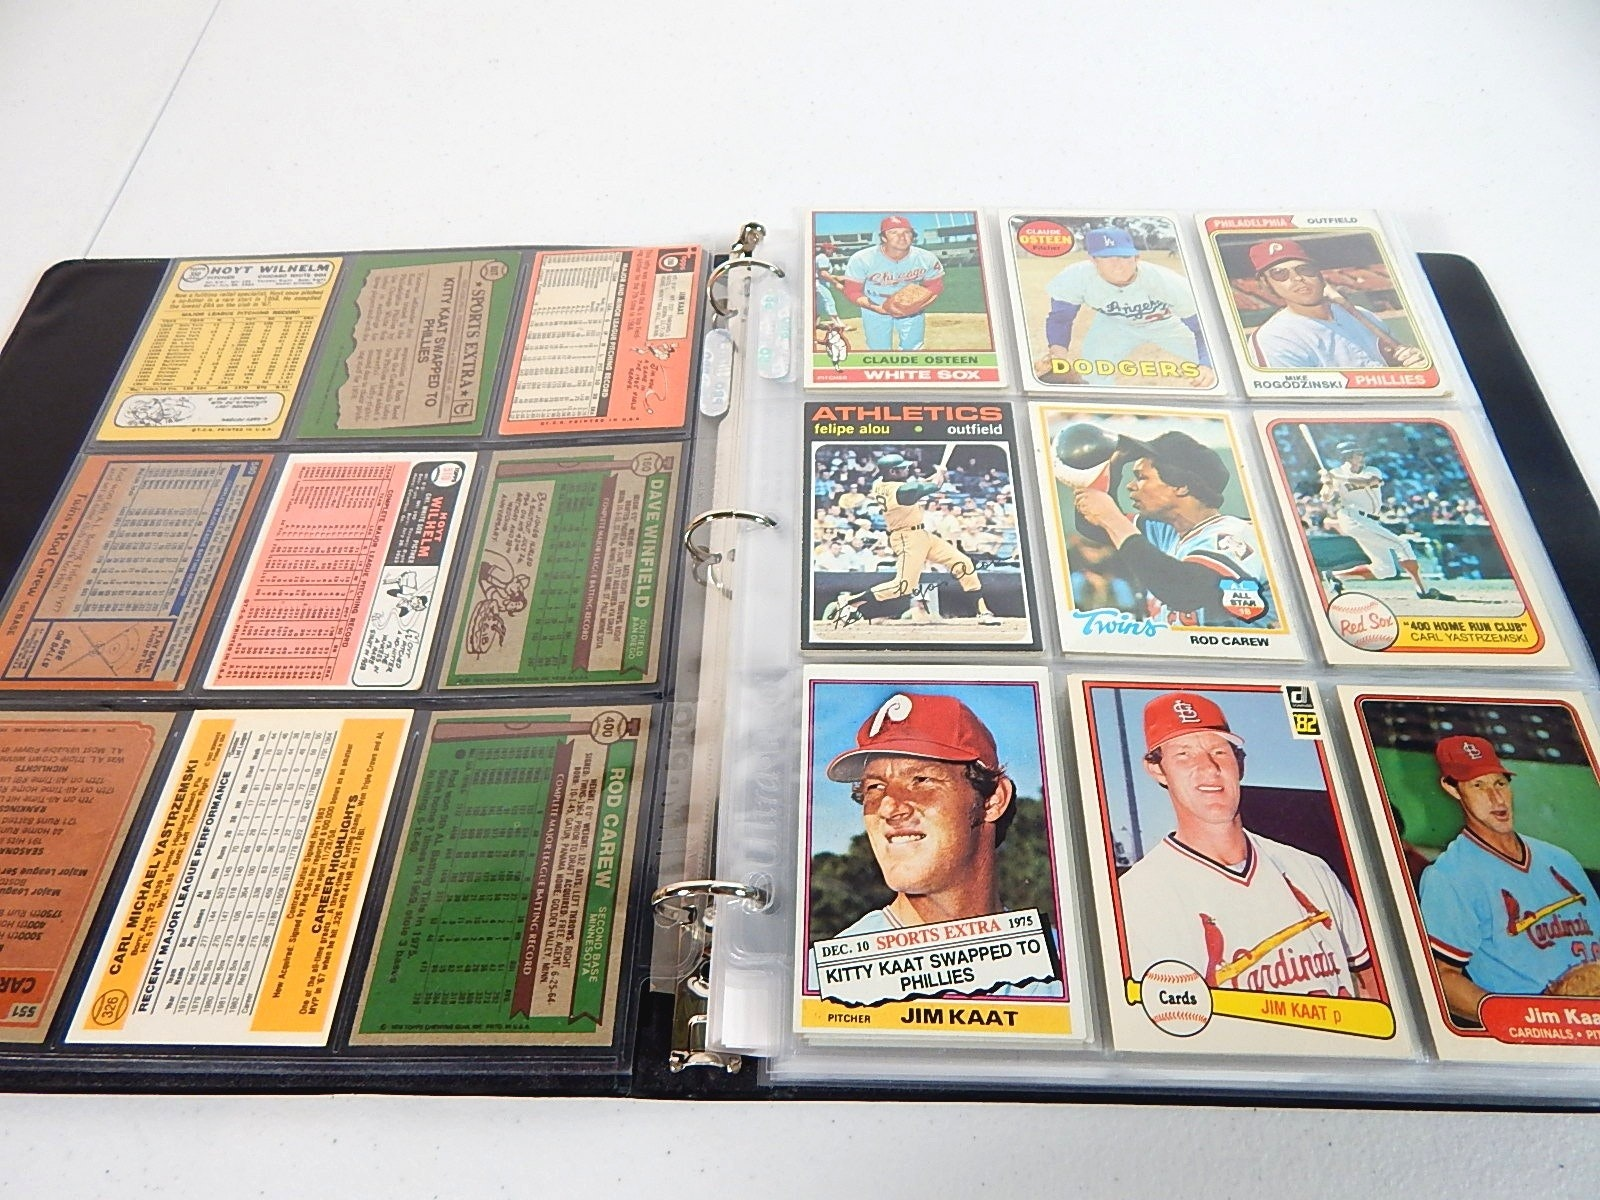 Album with Over 200 Baseball Cards from 1960s to 2000s